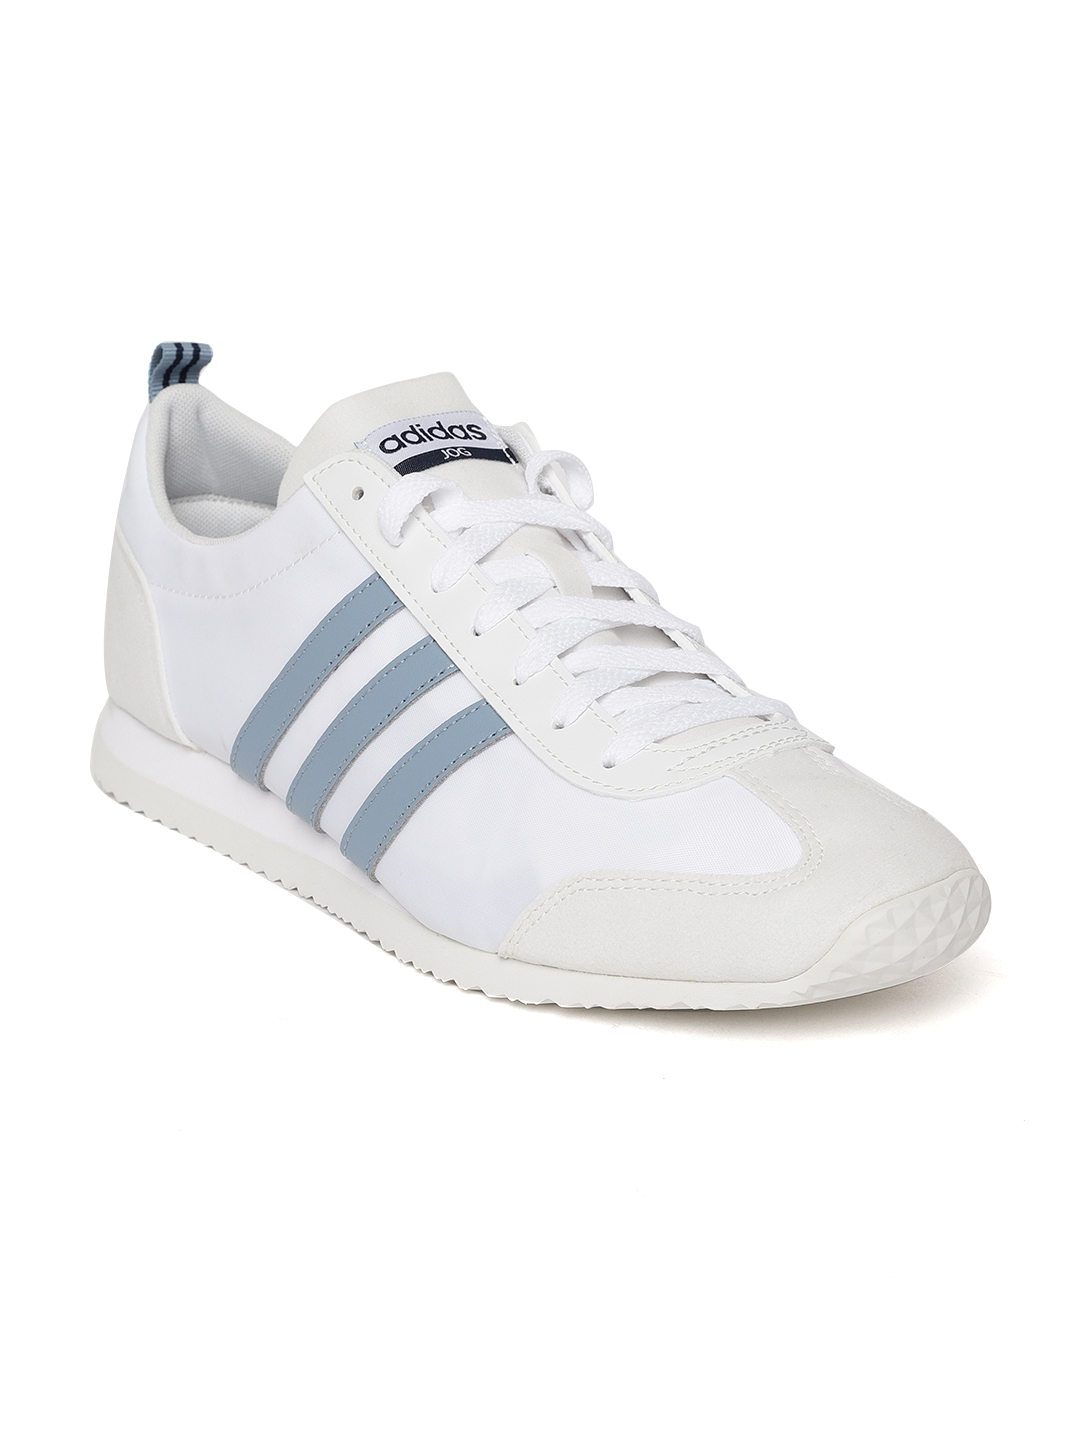 cheap for sale super specials 2018 sneakers ADIDAS Men White VS JOG Running Shoes